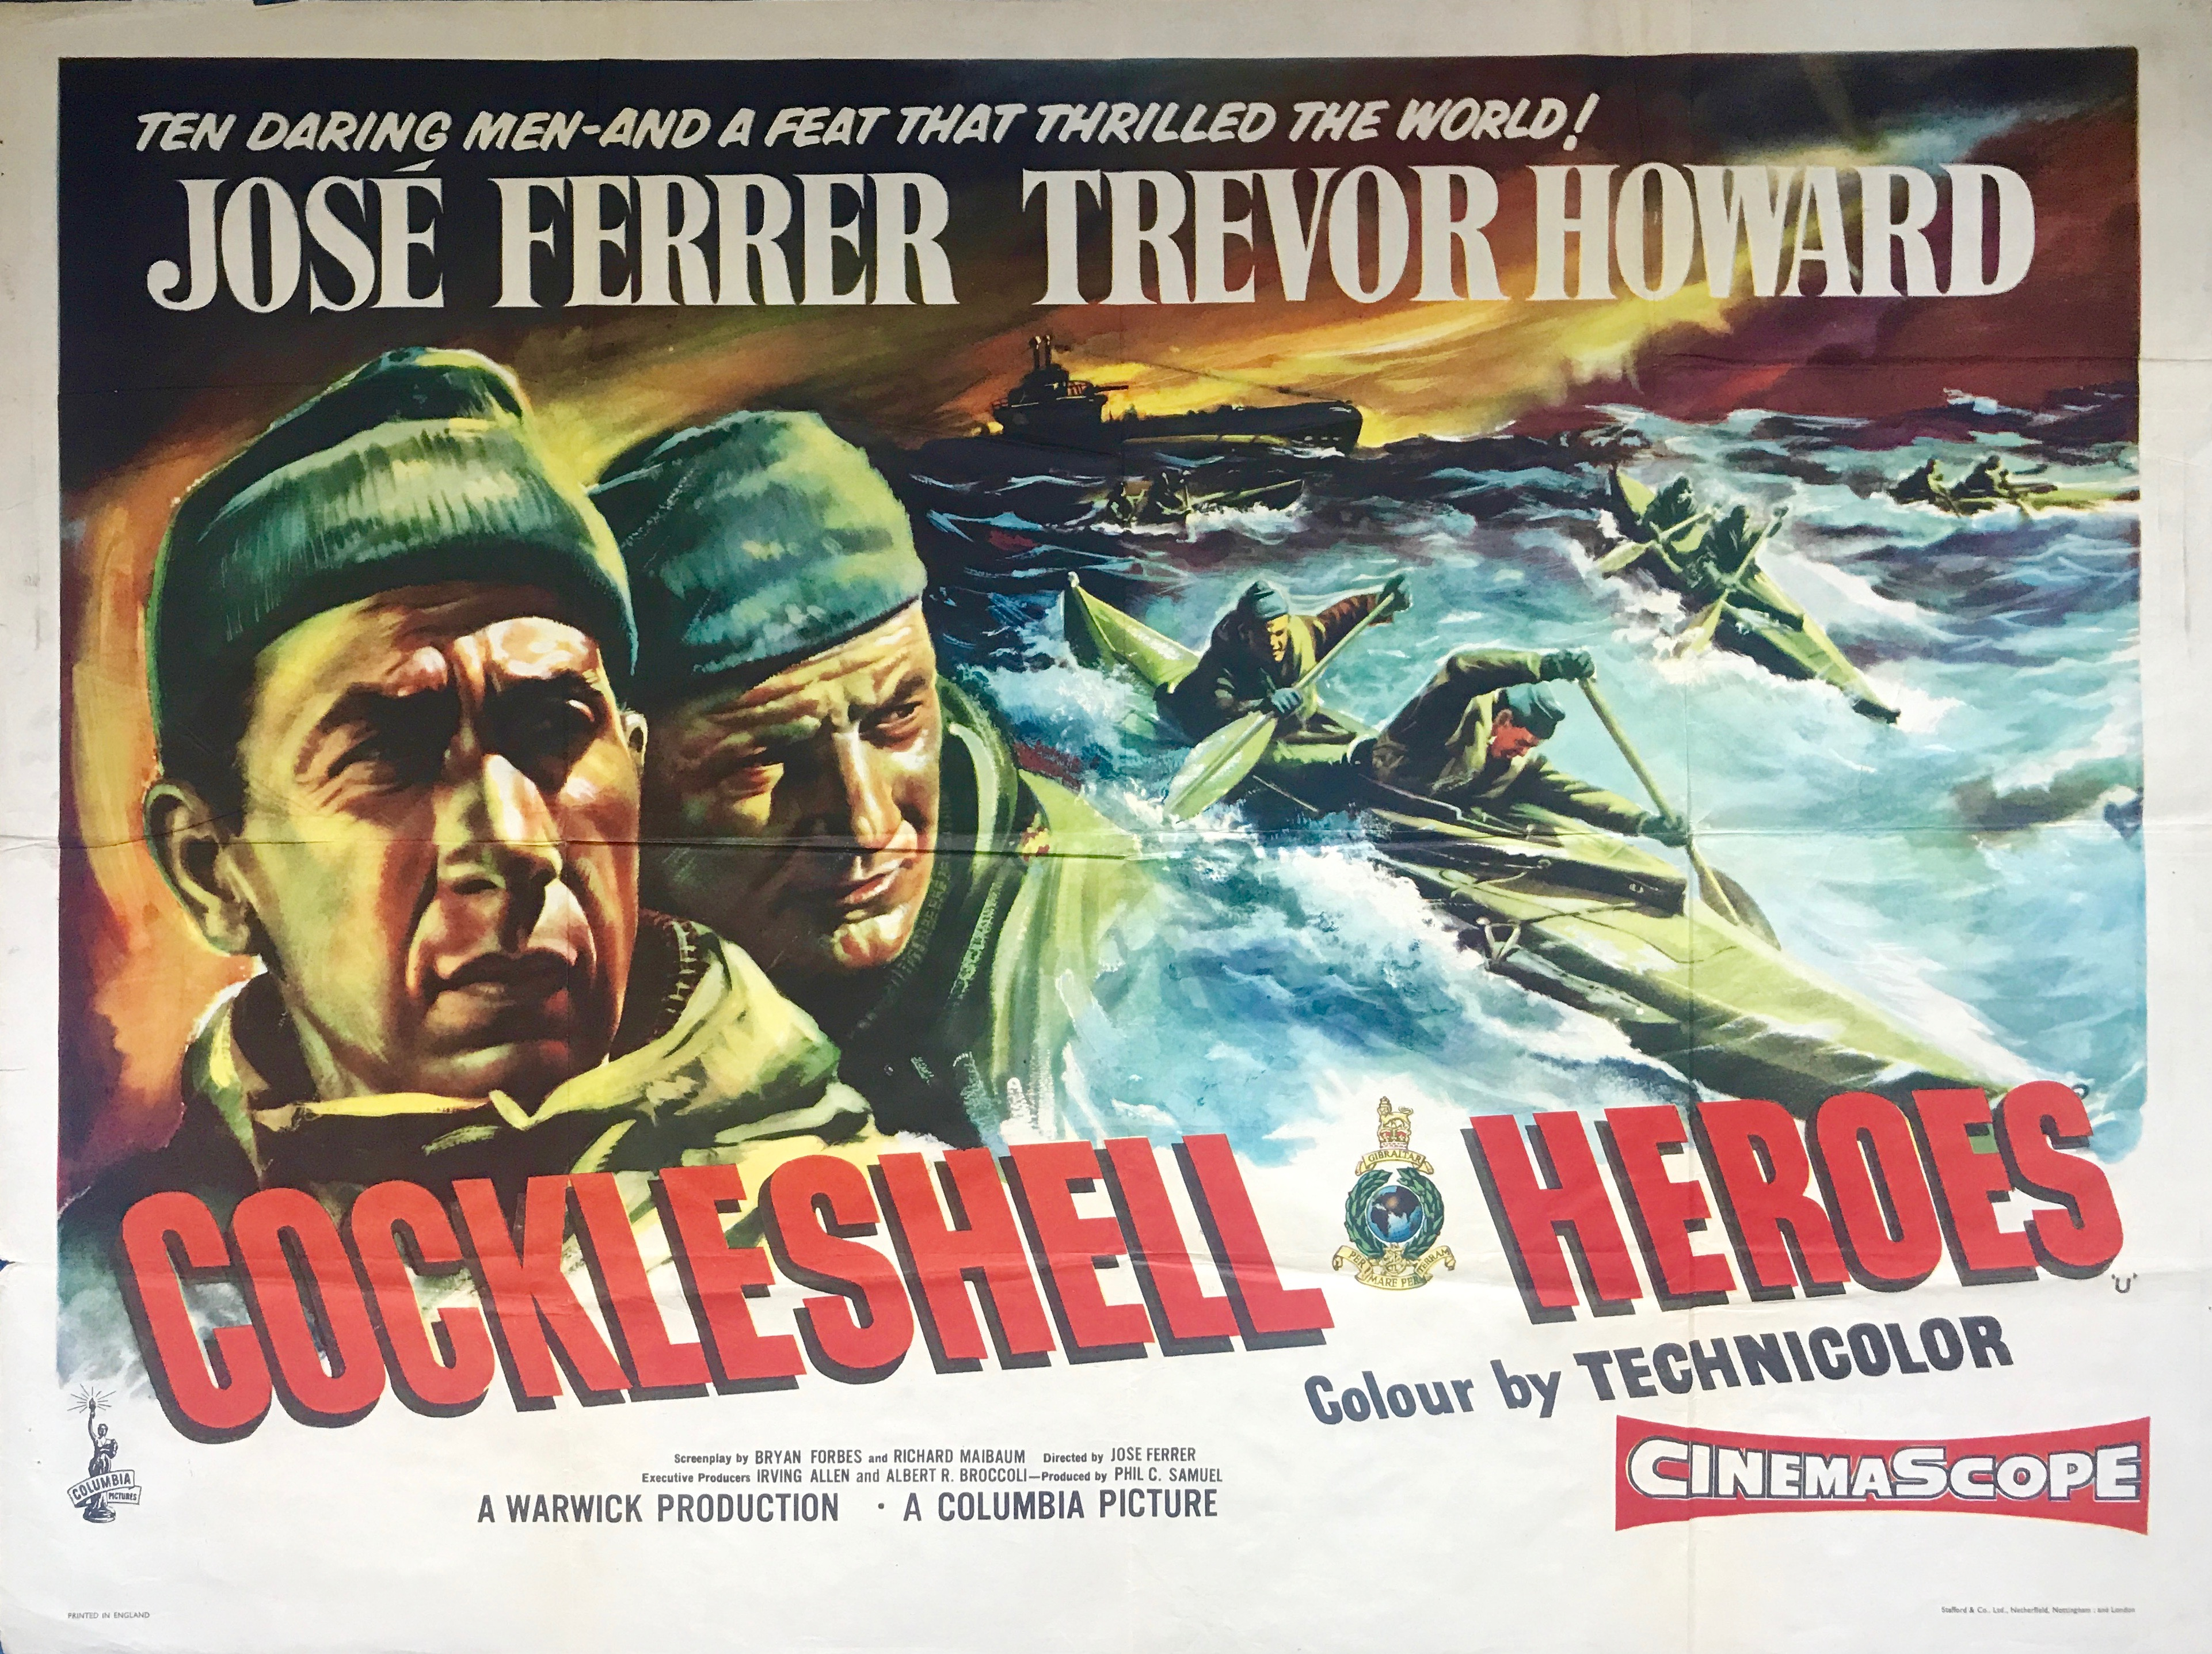 Cockleshell Heroes - Vintage Movie Posters